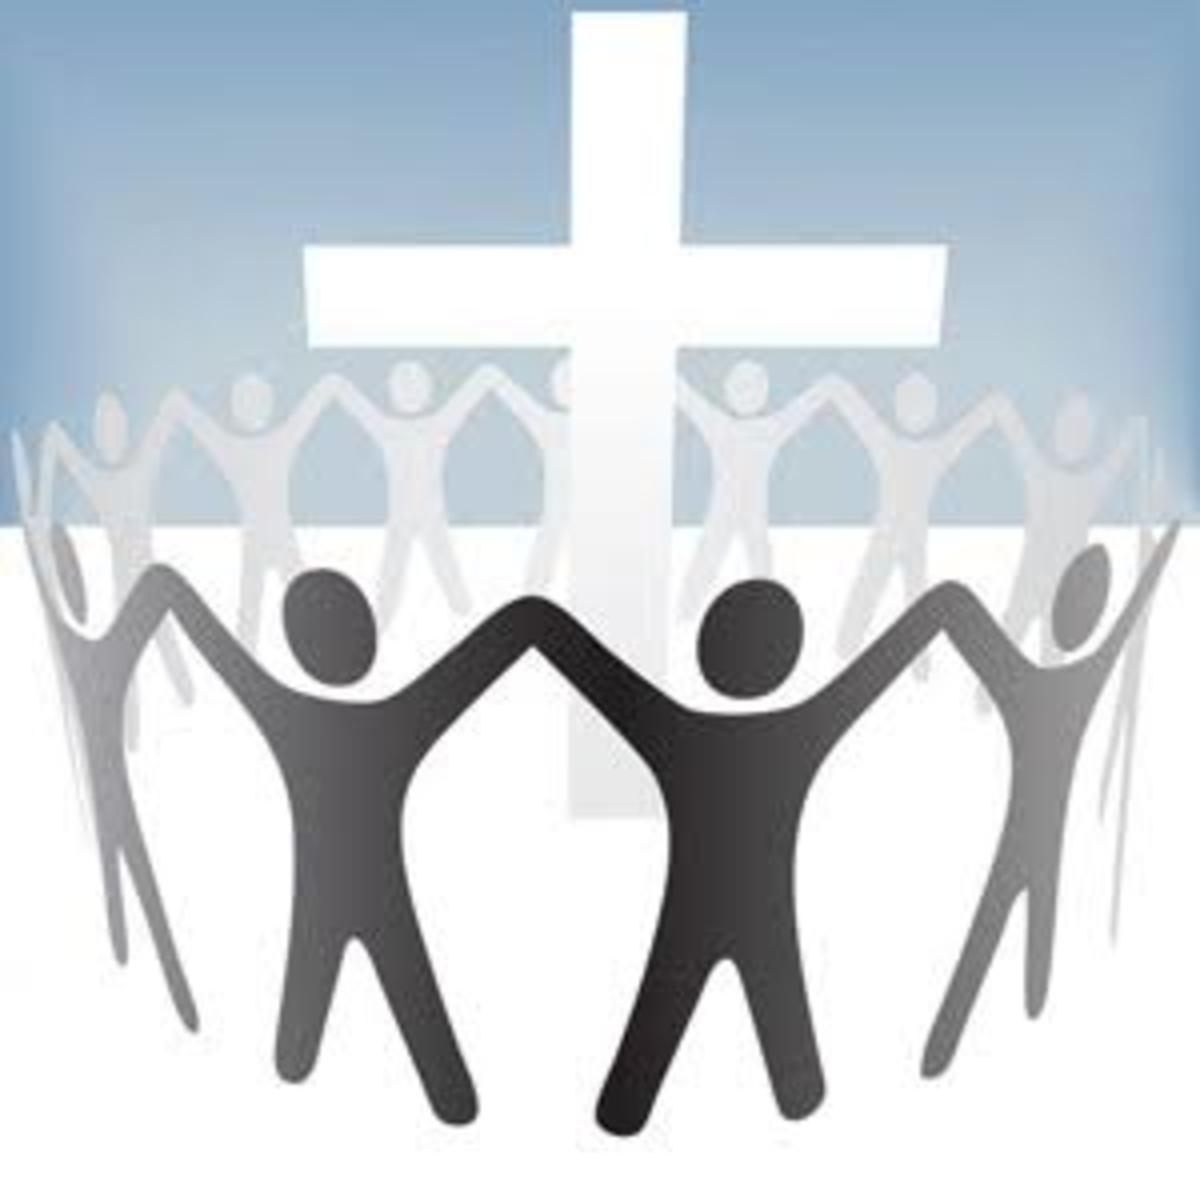 creating-and-nourishing-communal-life-the-process-of-salvation